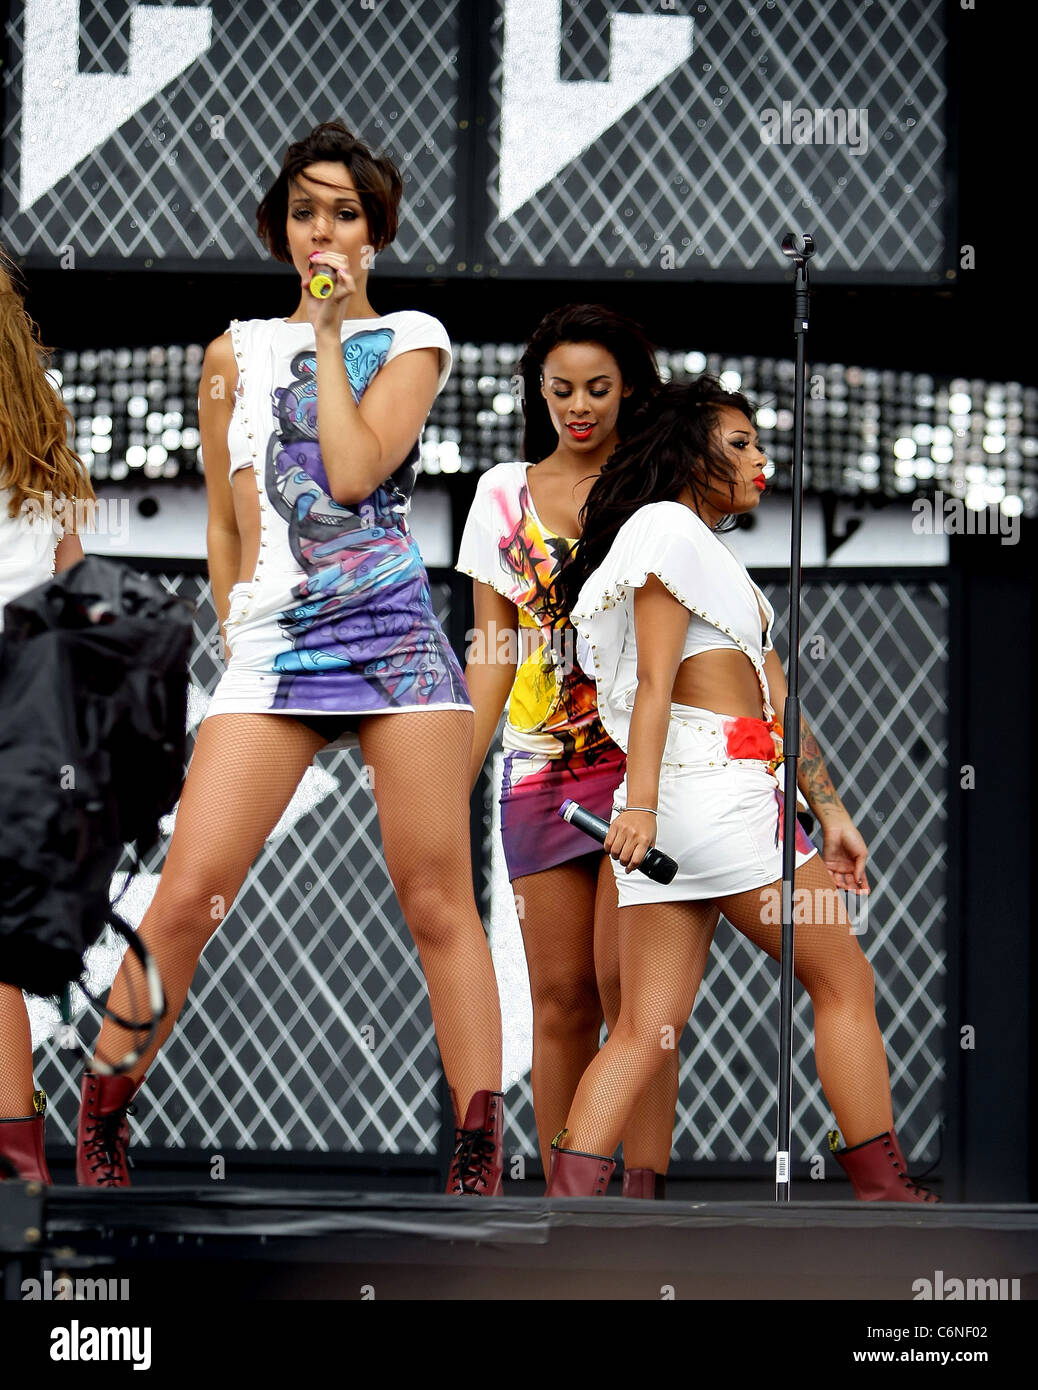 The Saturdays T4 On The Beach 2010 at Weston-super-Mare Somerset, England - 04.07.10 Shaun Bailey - Stock Image